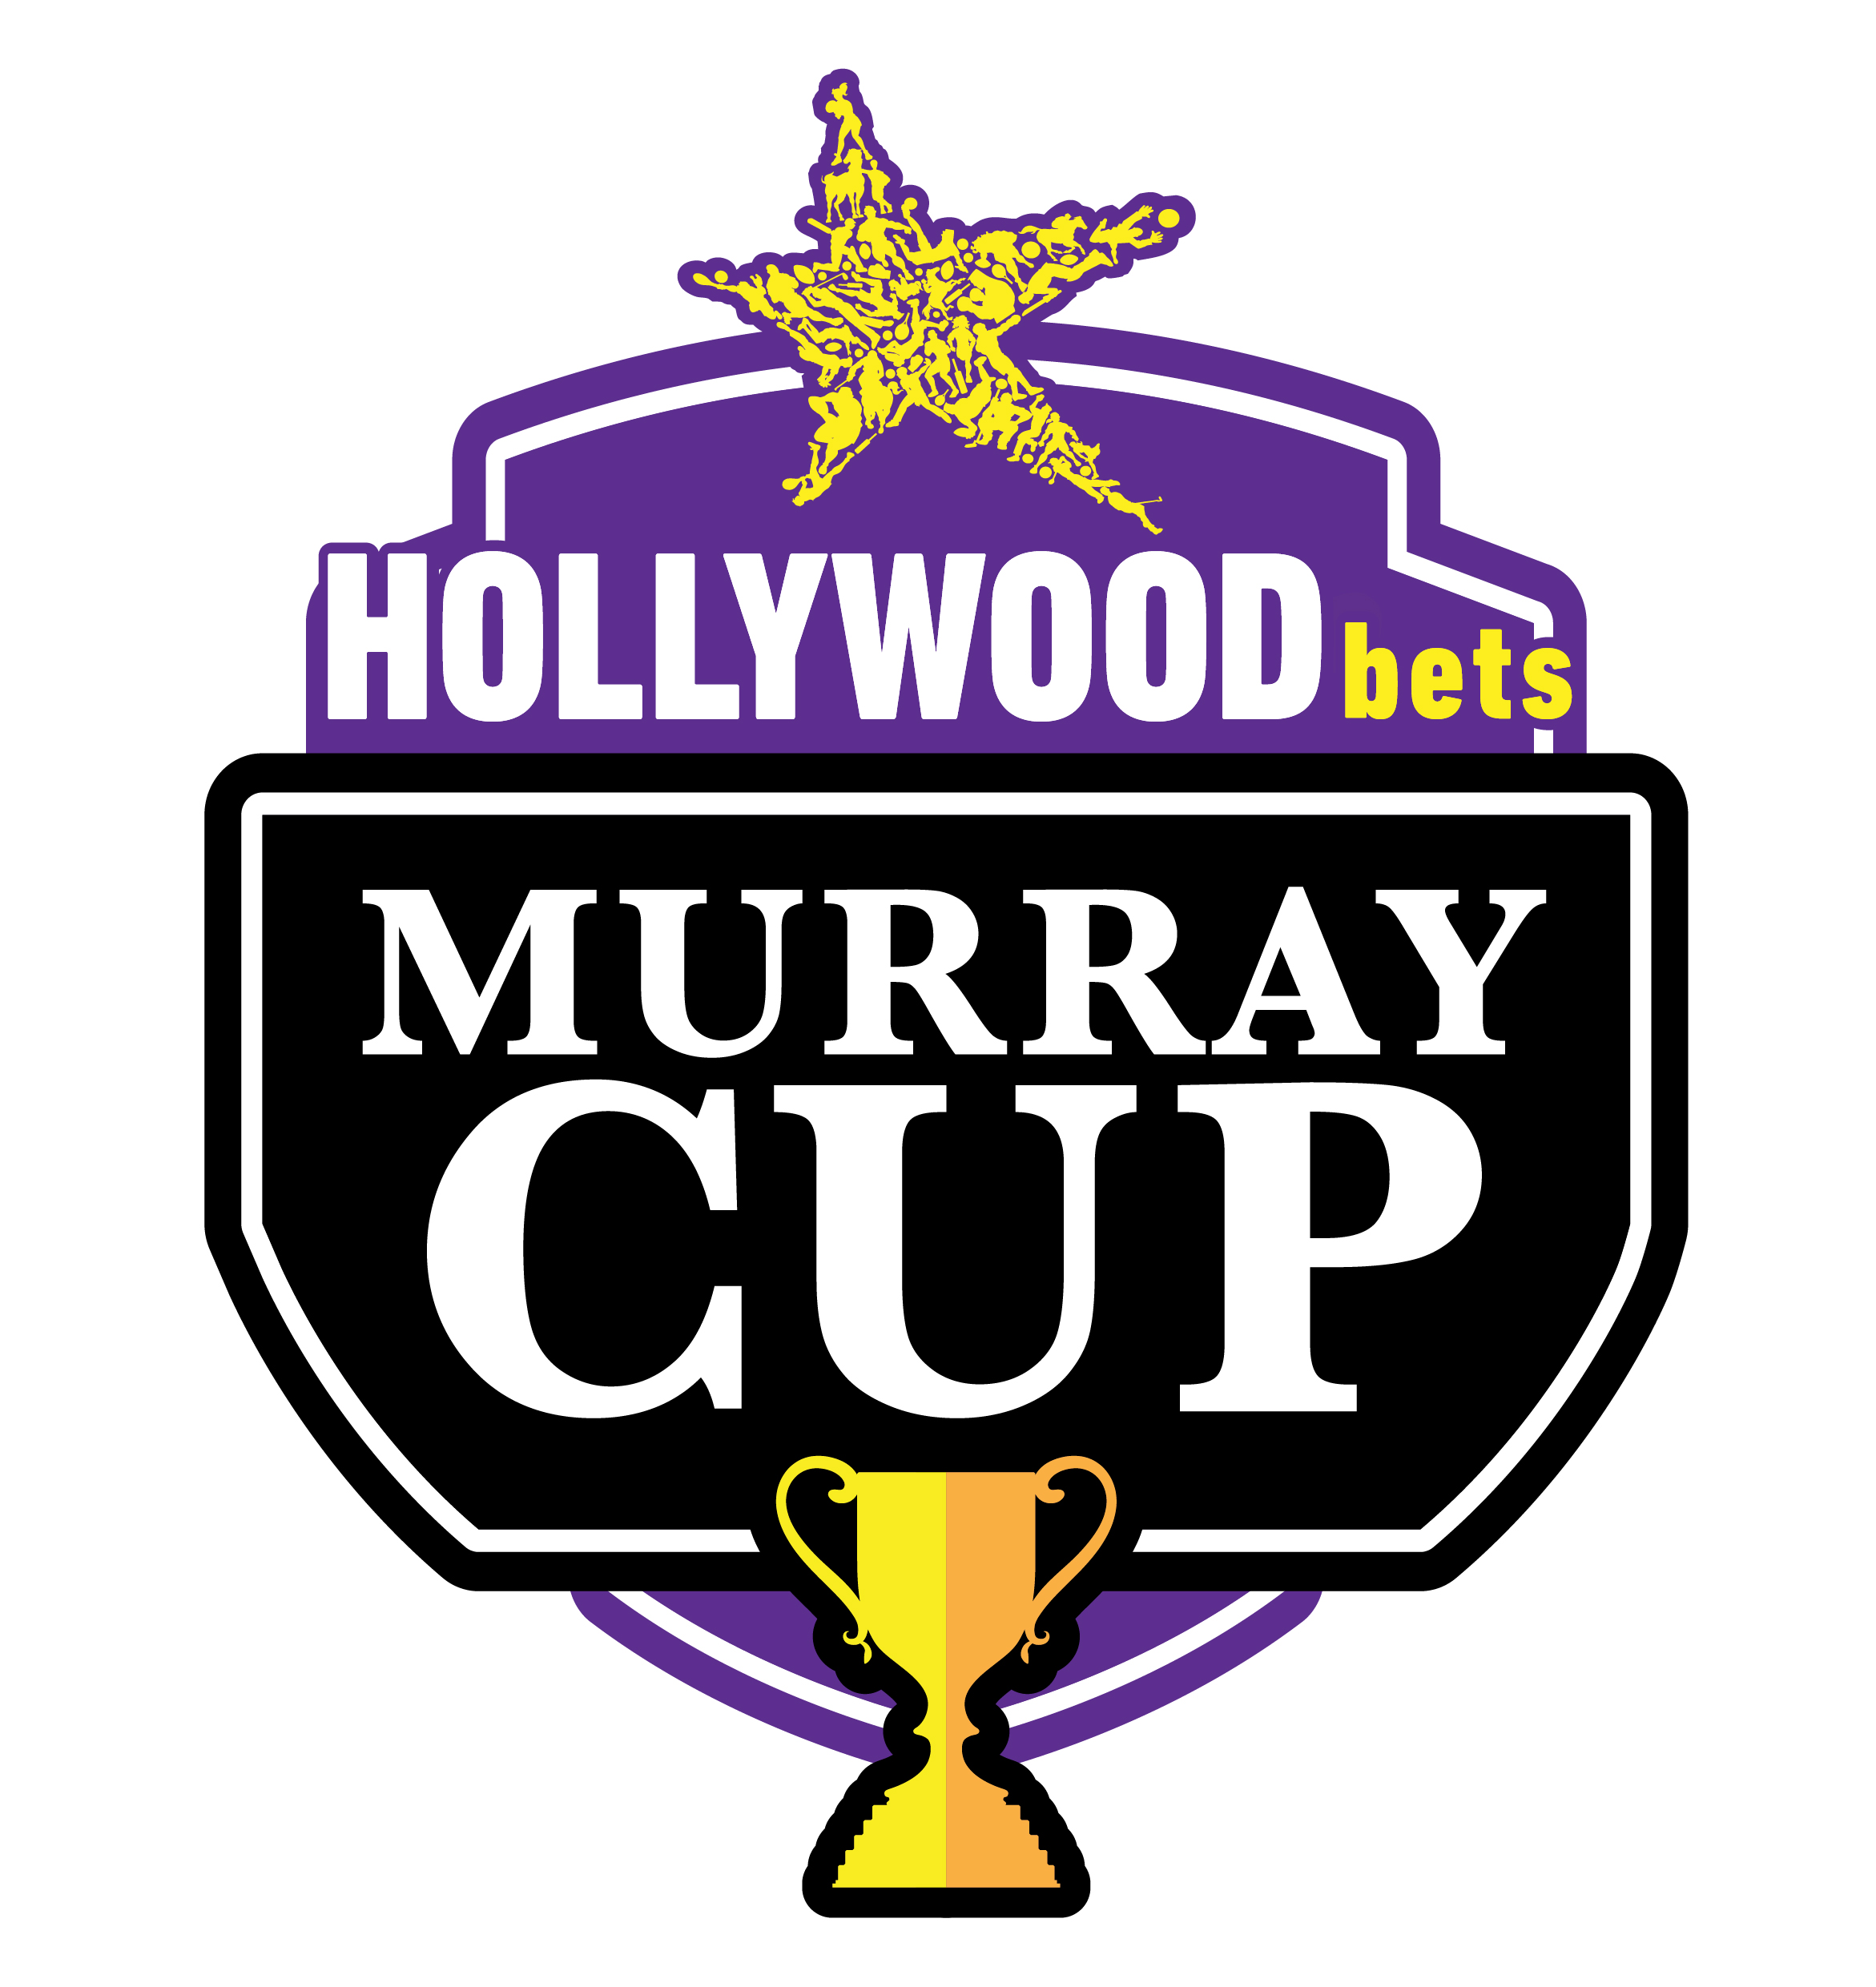 Murray Cup